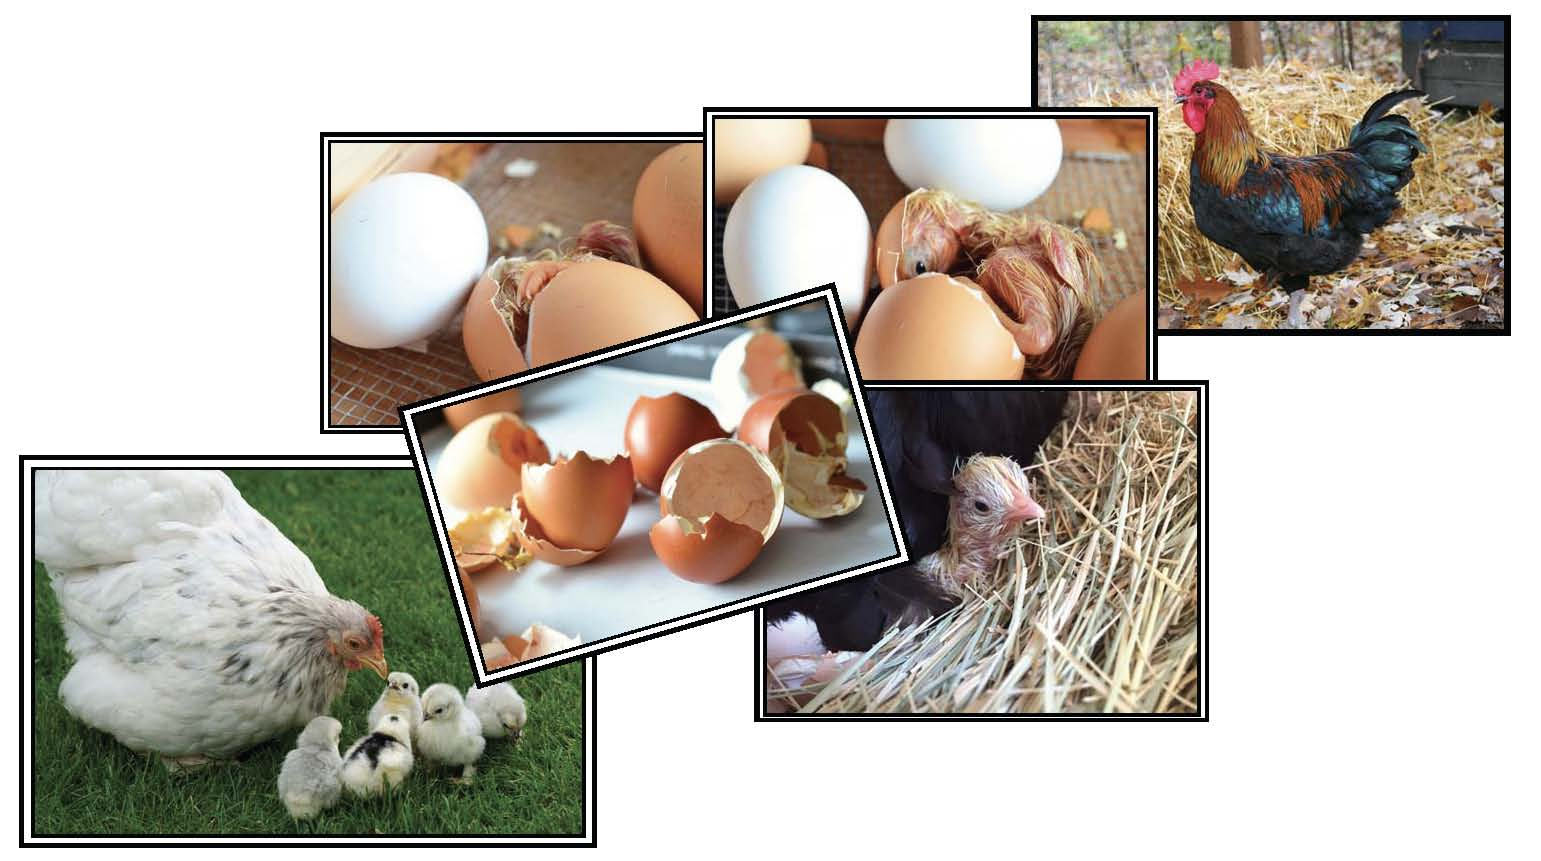 chicken life cycle activities, chicken crafts, chick hatching activities, egg experiments, chick hatching photographs, chicken games, chick games, life cycle of a chicken posters, life cycle of a chick games, life cycle of a chick crafts